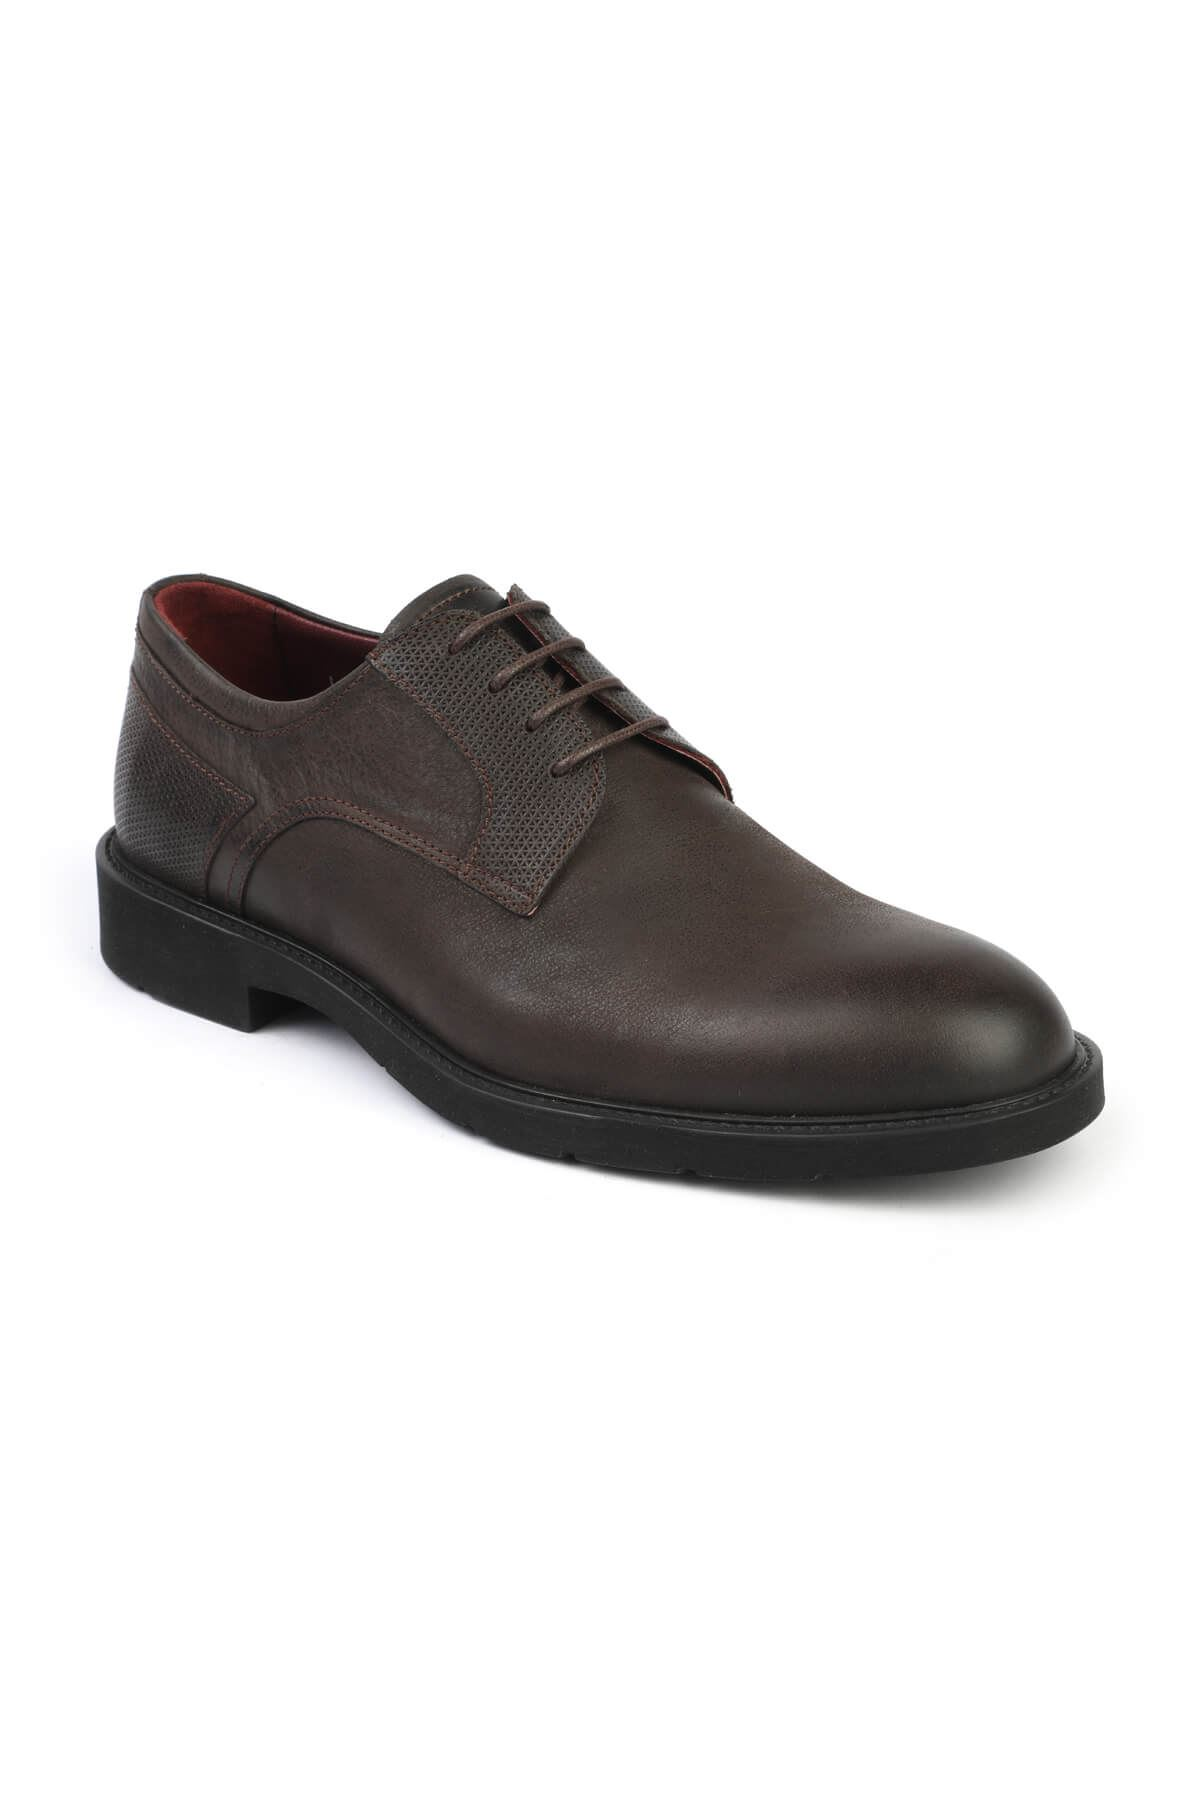 Libero 3100 Brown Casual Shoes